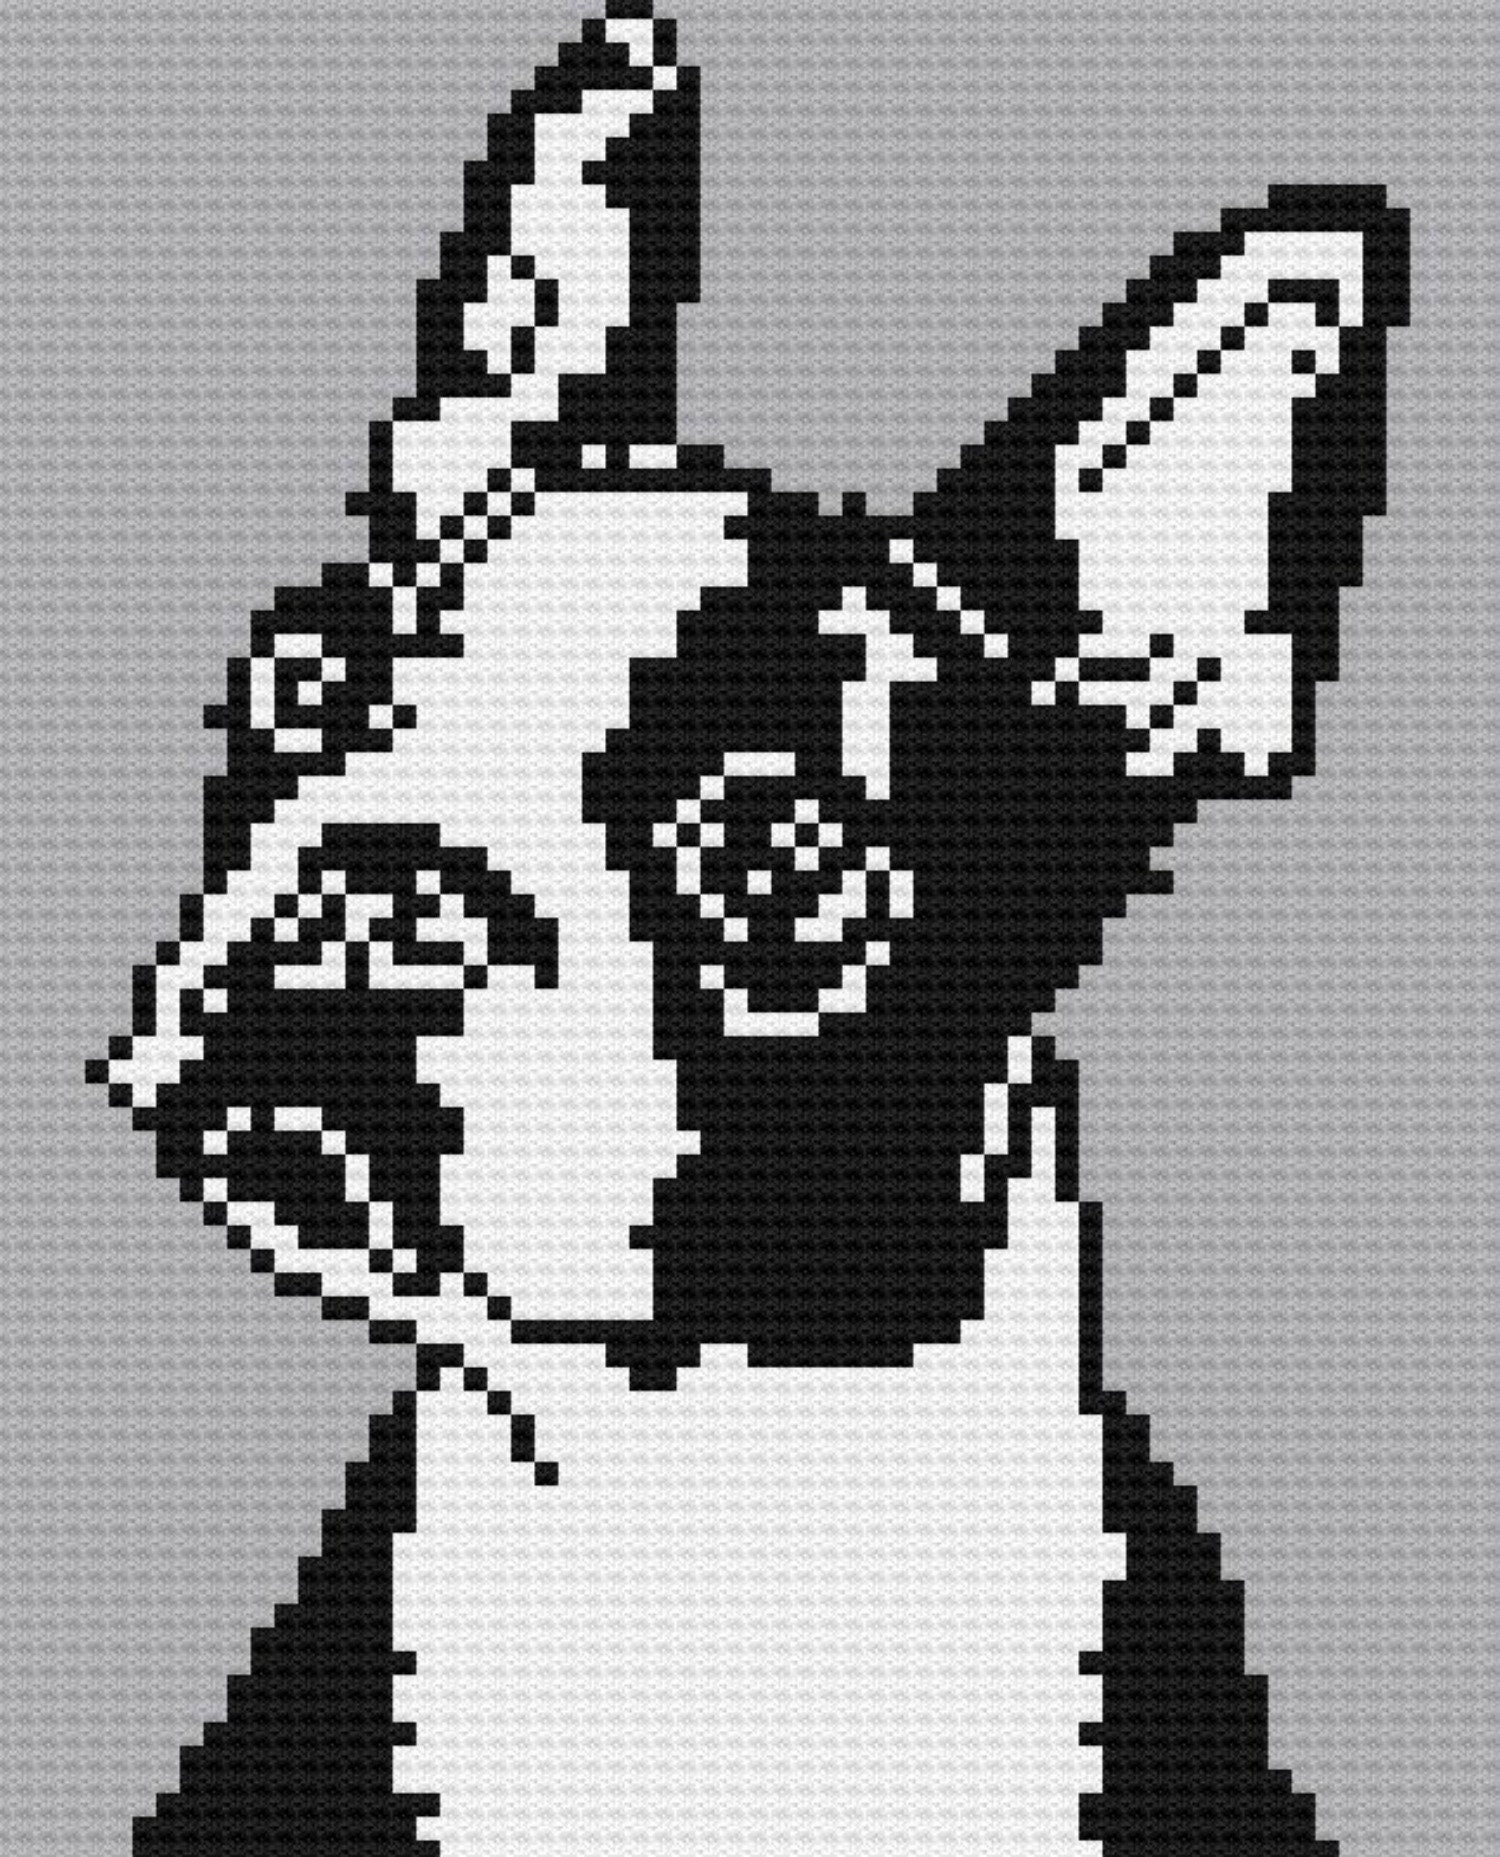 Boston Terrier, C2C Crochet Pattern, Written Row Counts, C2C